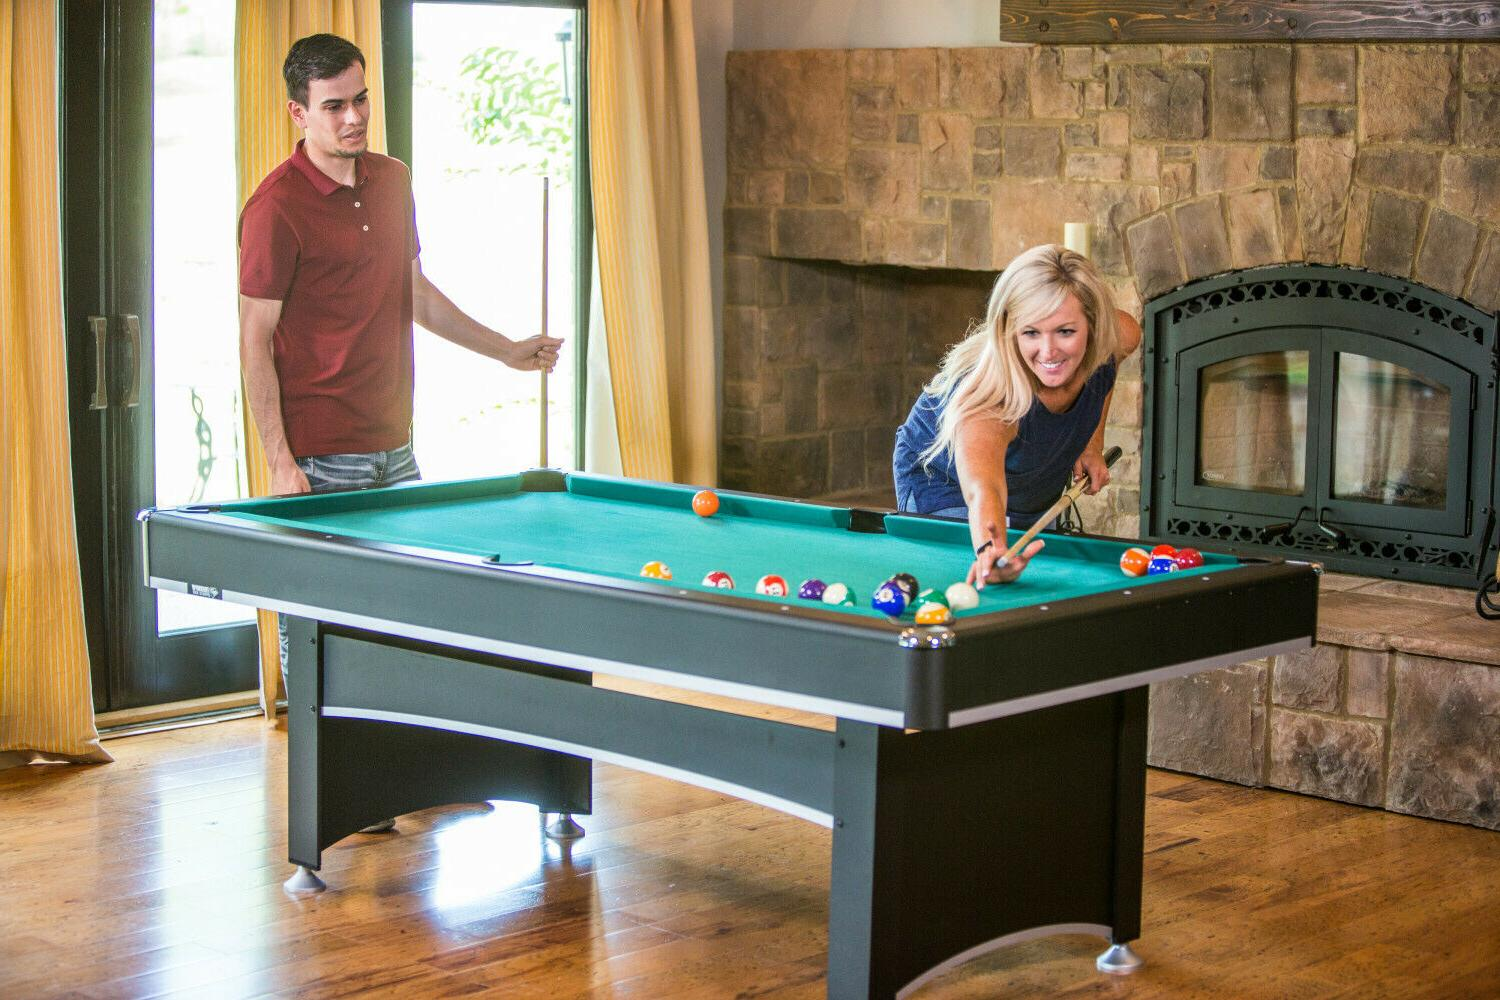 Pool Table With Ping Pong Tennis